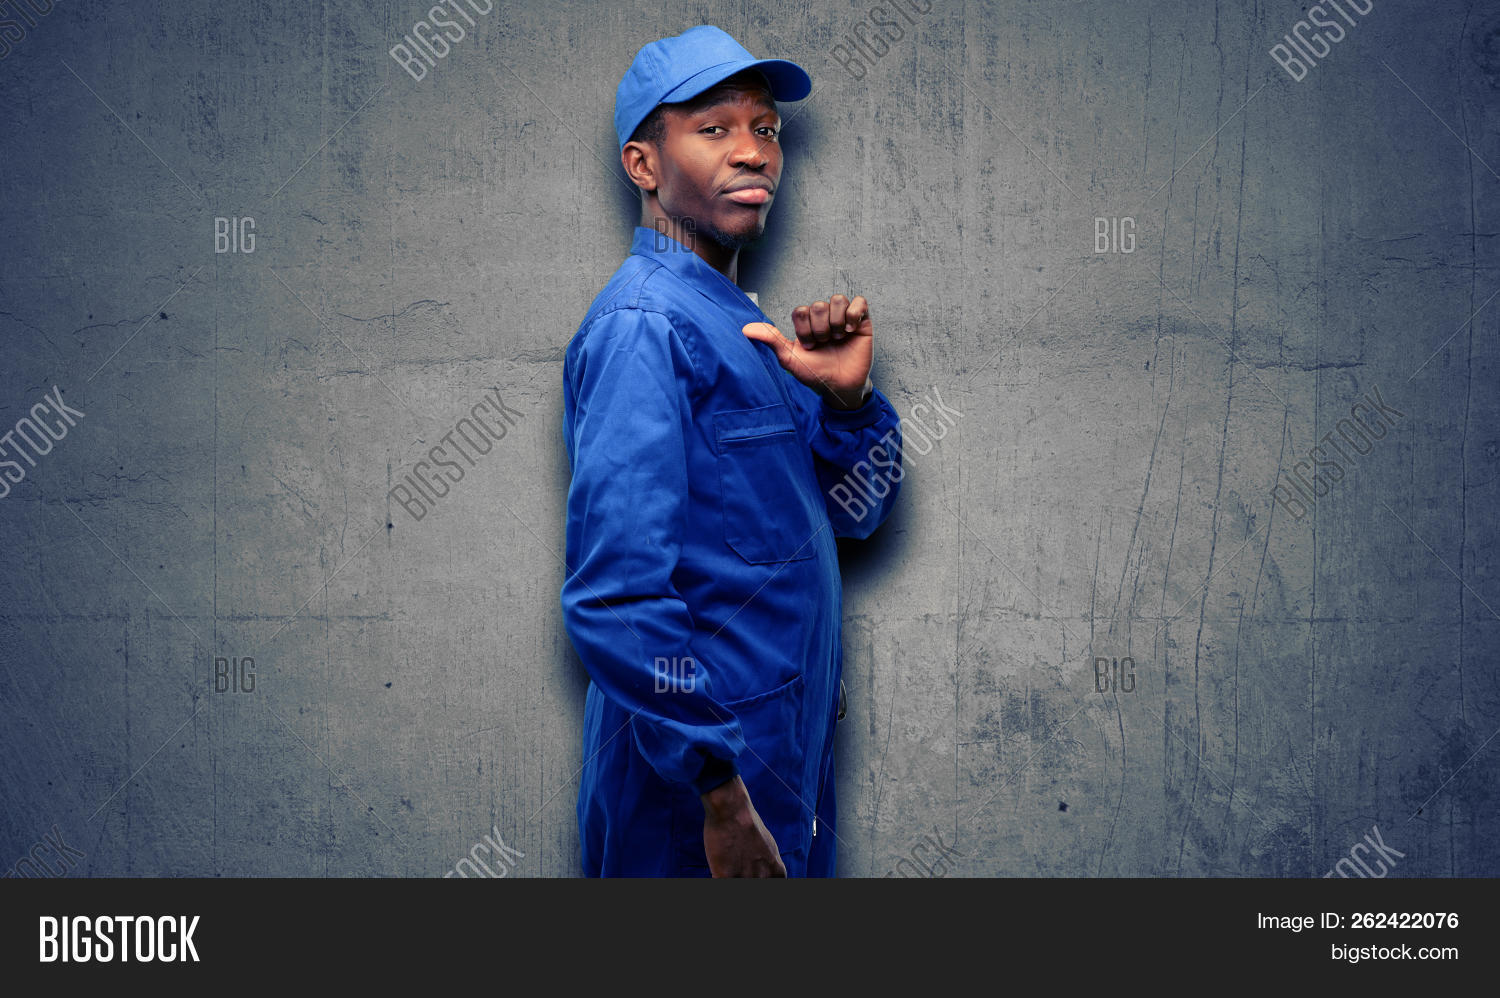 african,american,apprentice,arrogant,black,conceit,concept,construction,crazy,excited,expression,face,finger,fixing,gesture,hand,happy,himself,joke,kitchen,laugh,lucky,man,mouth,occupation,one,plumber,plumbing,point,posing,proud,puzzled,repair,silly,smart,smile,standing,surprise,vain,victory,wonder,worker,wrench,young